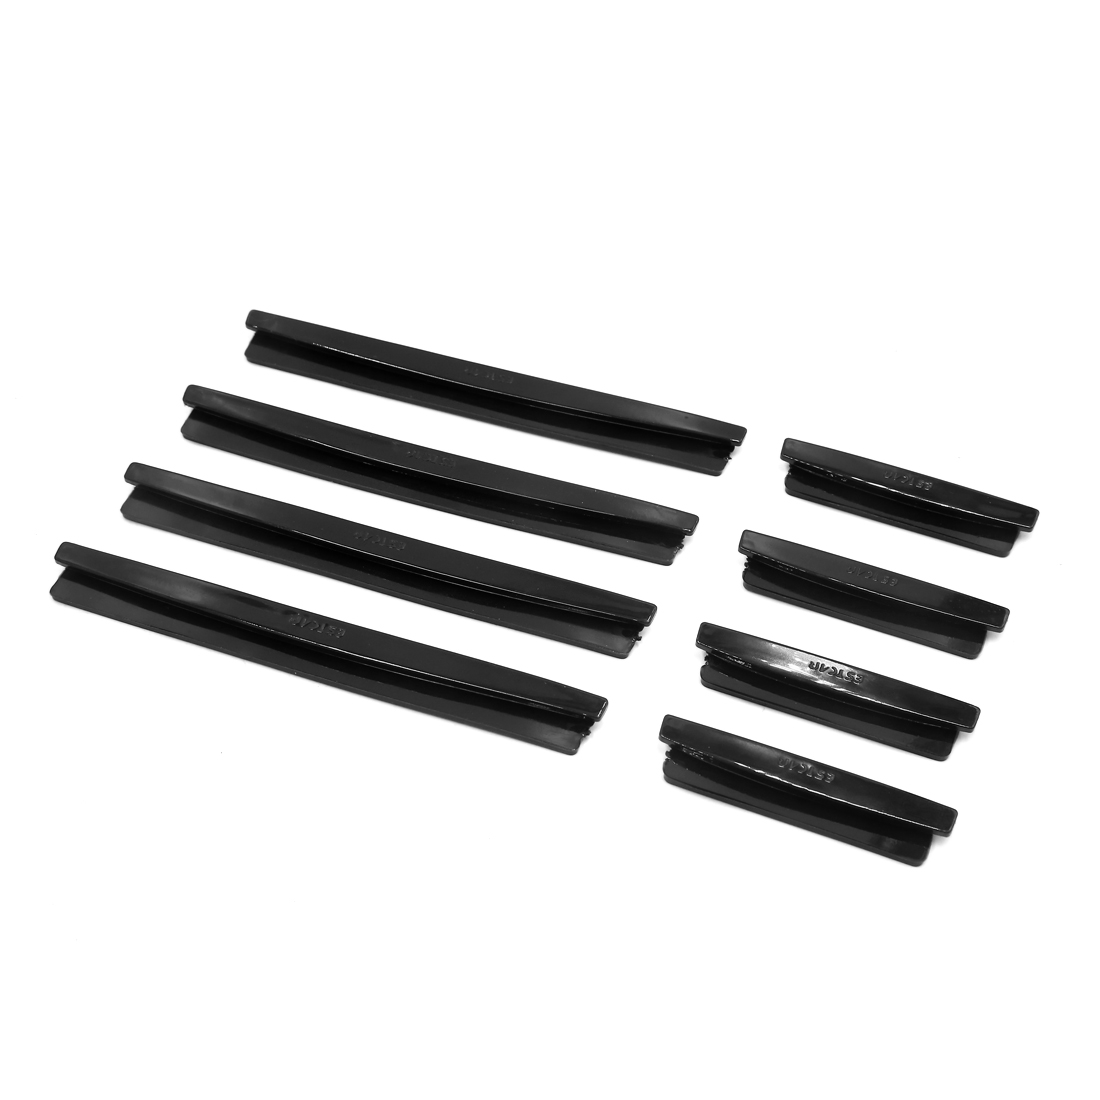 8pcs Black Rubber Car Body Door Side Edge Guard Strip Scratch Decor Protector